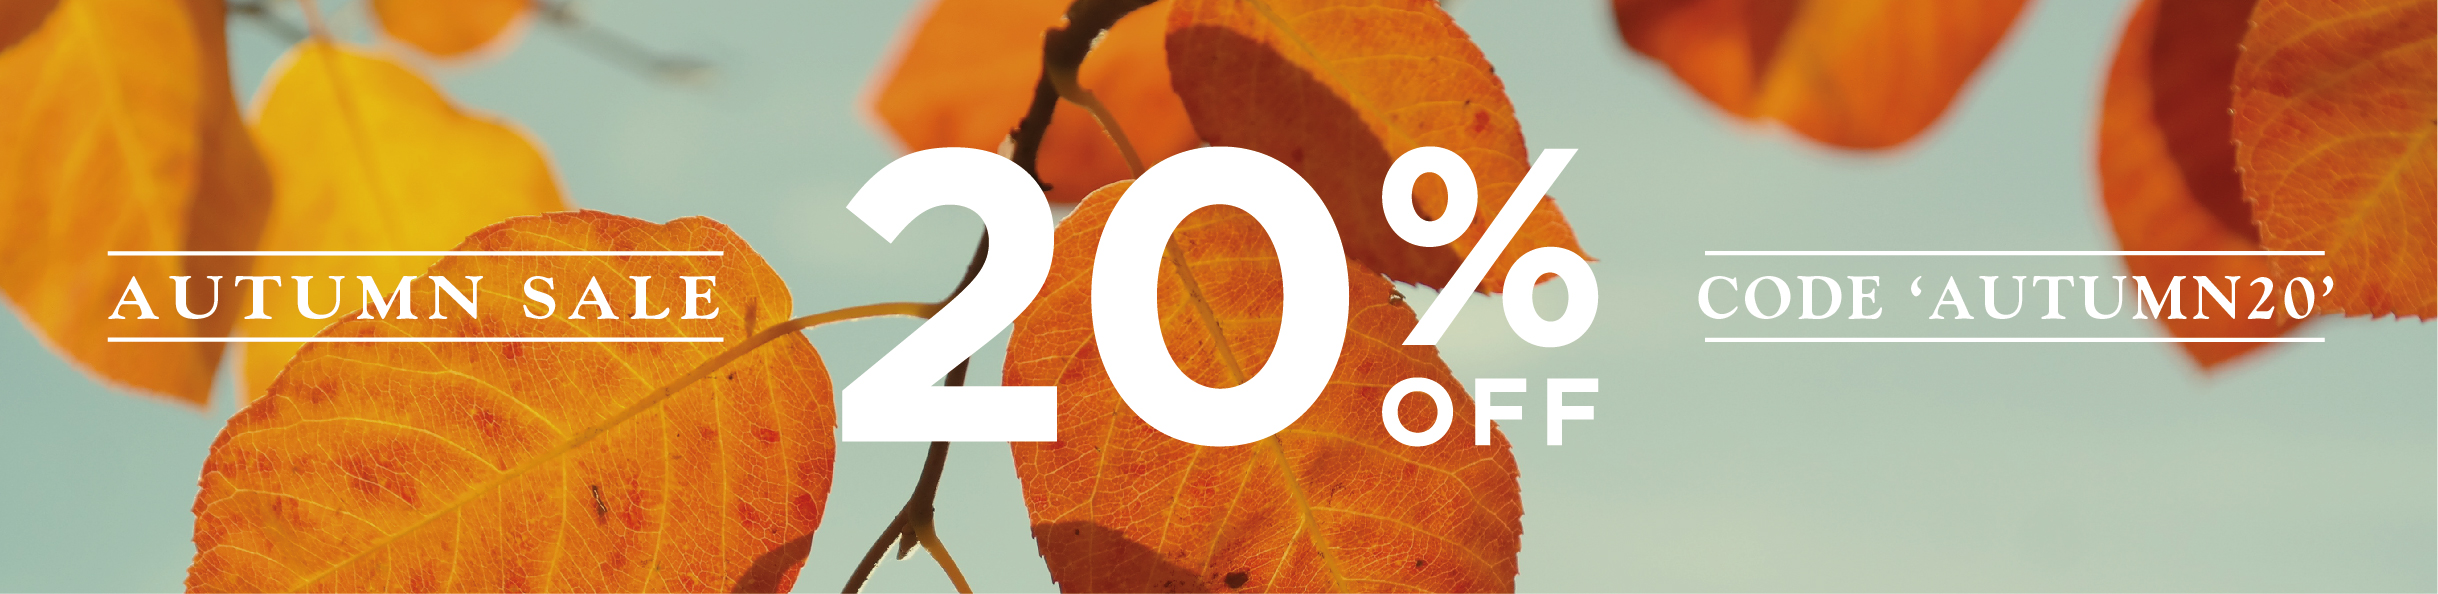 One-By-One-Autumn-Sale-Banner-20-off